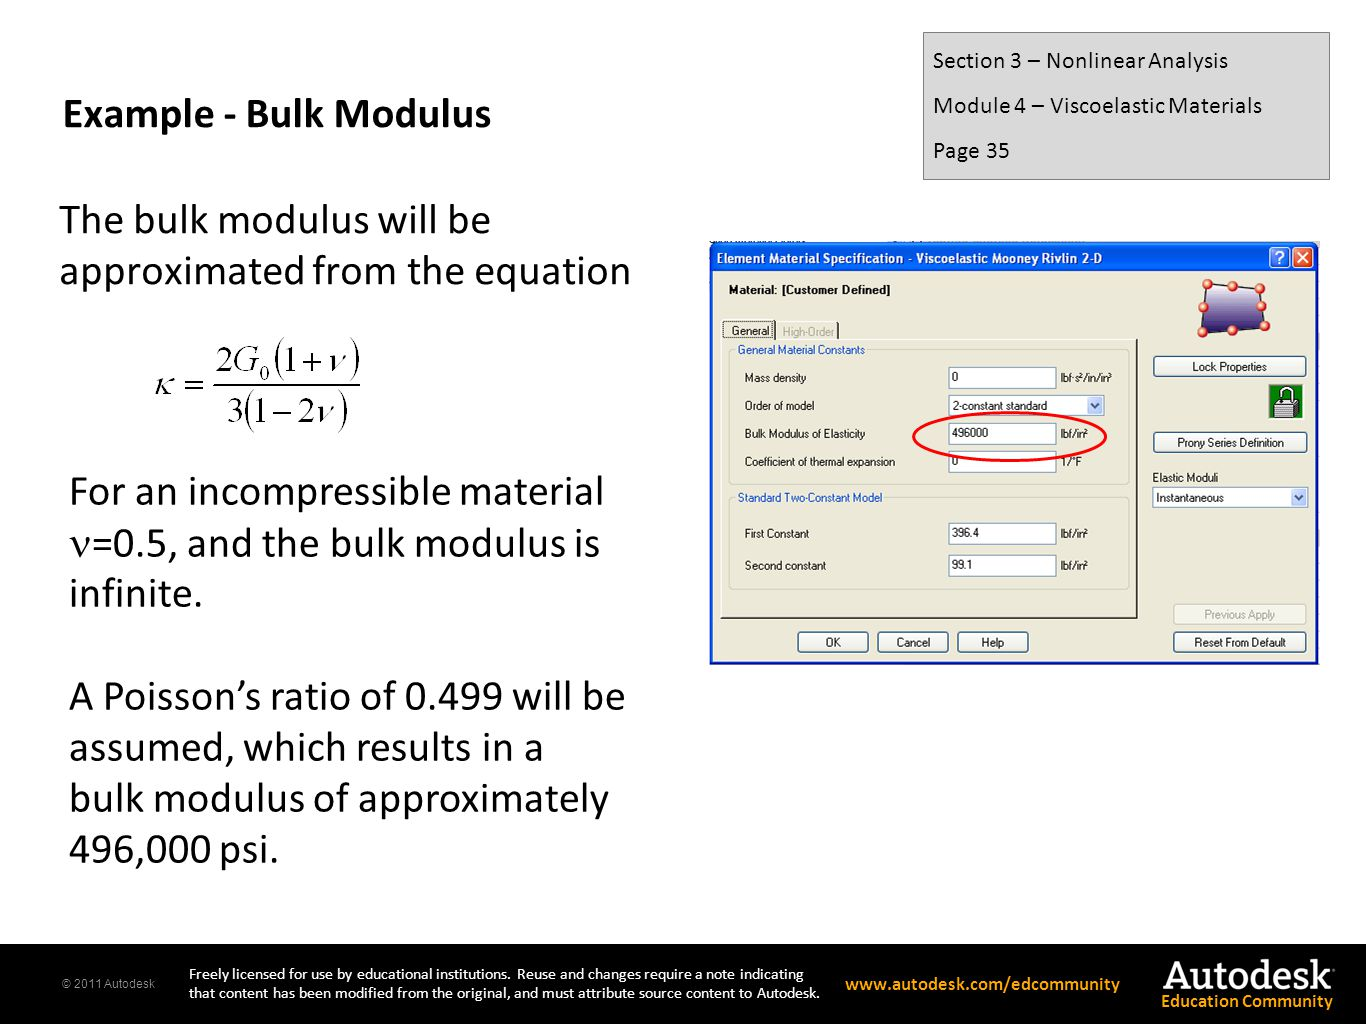 The bulk modulus will be approximated from the equation